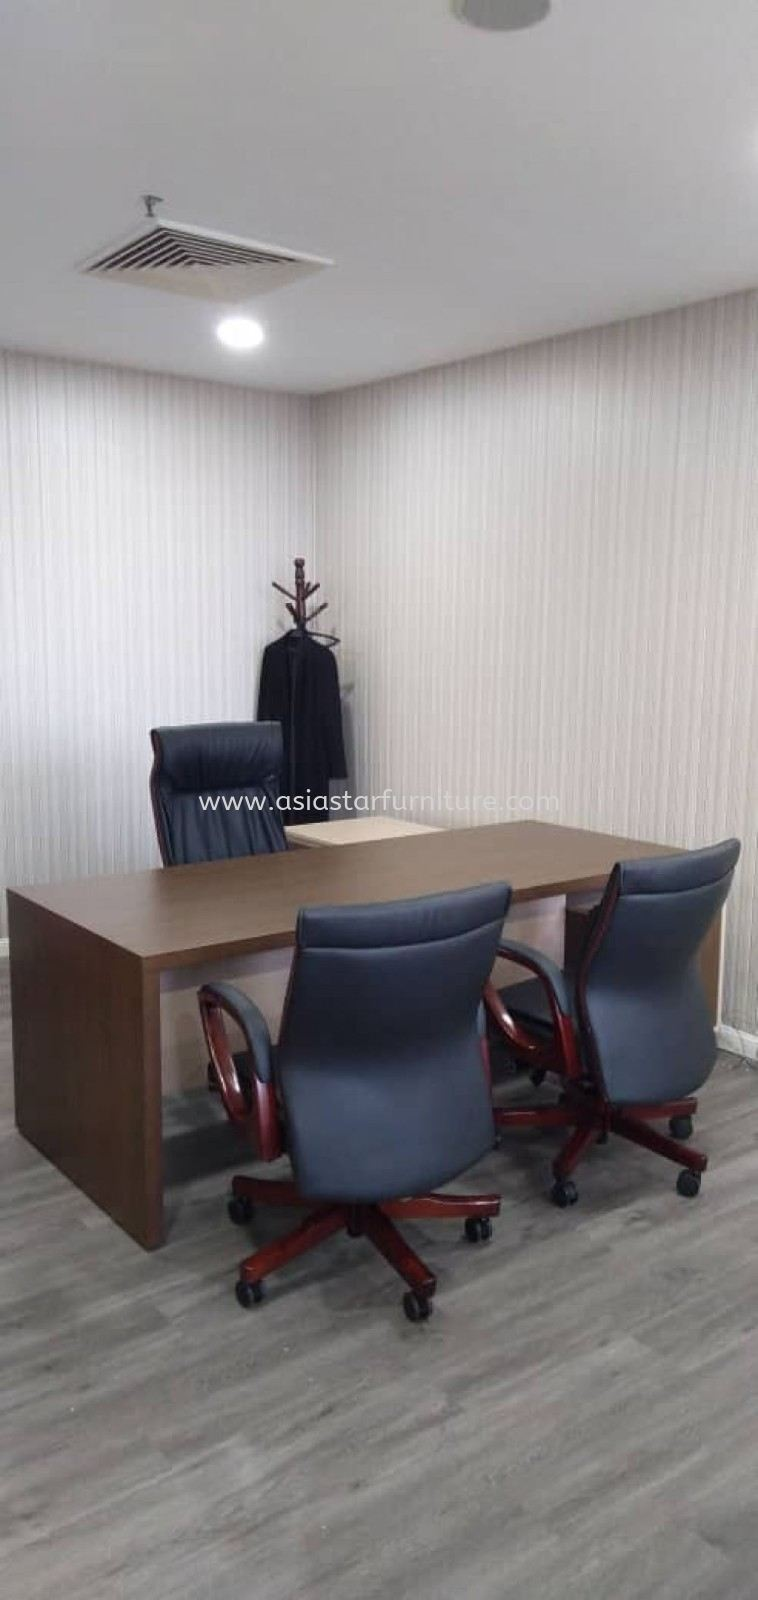 DELIVERY & INSTALLATION QAMAR DIRECTOR OFFICE TABLE AQX 1800 WITH SIDE CABINET AQ-YLP 6122 OFFICE FURNITURE BATU CAVES, KUALA LUMPUR